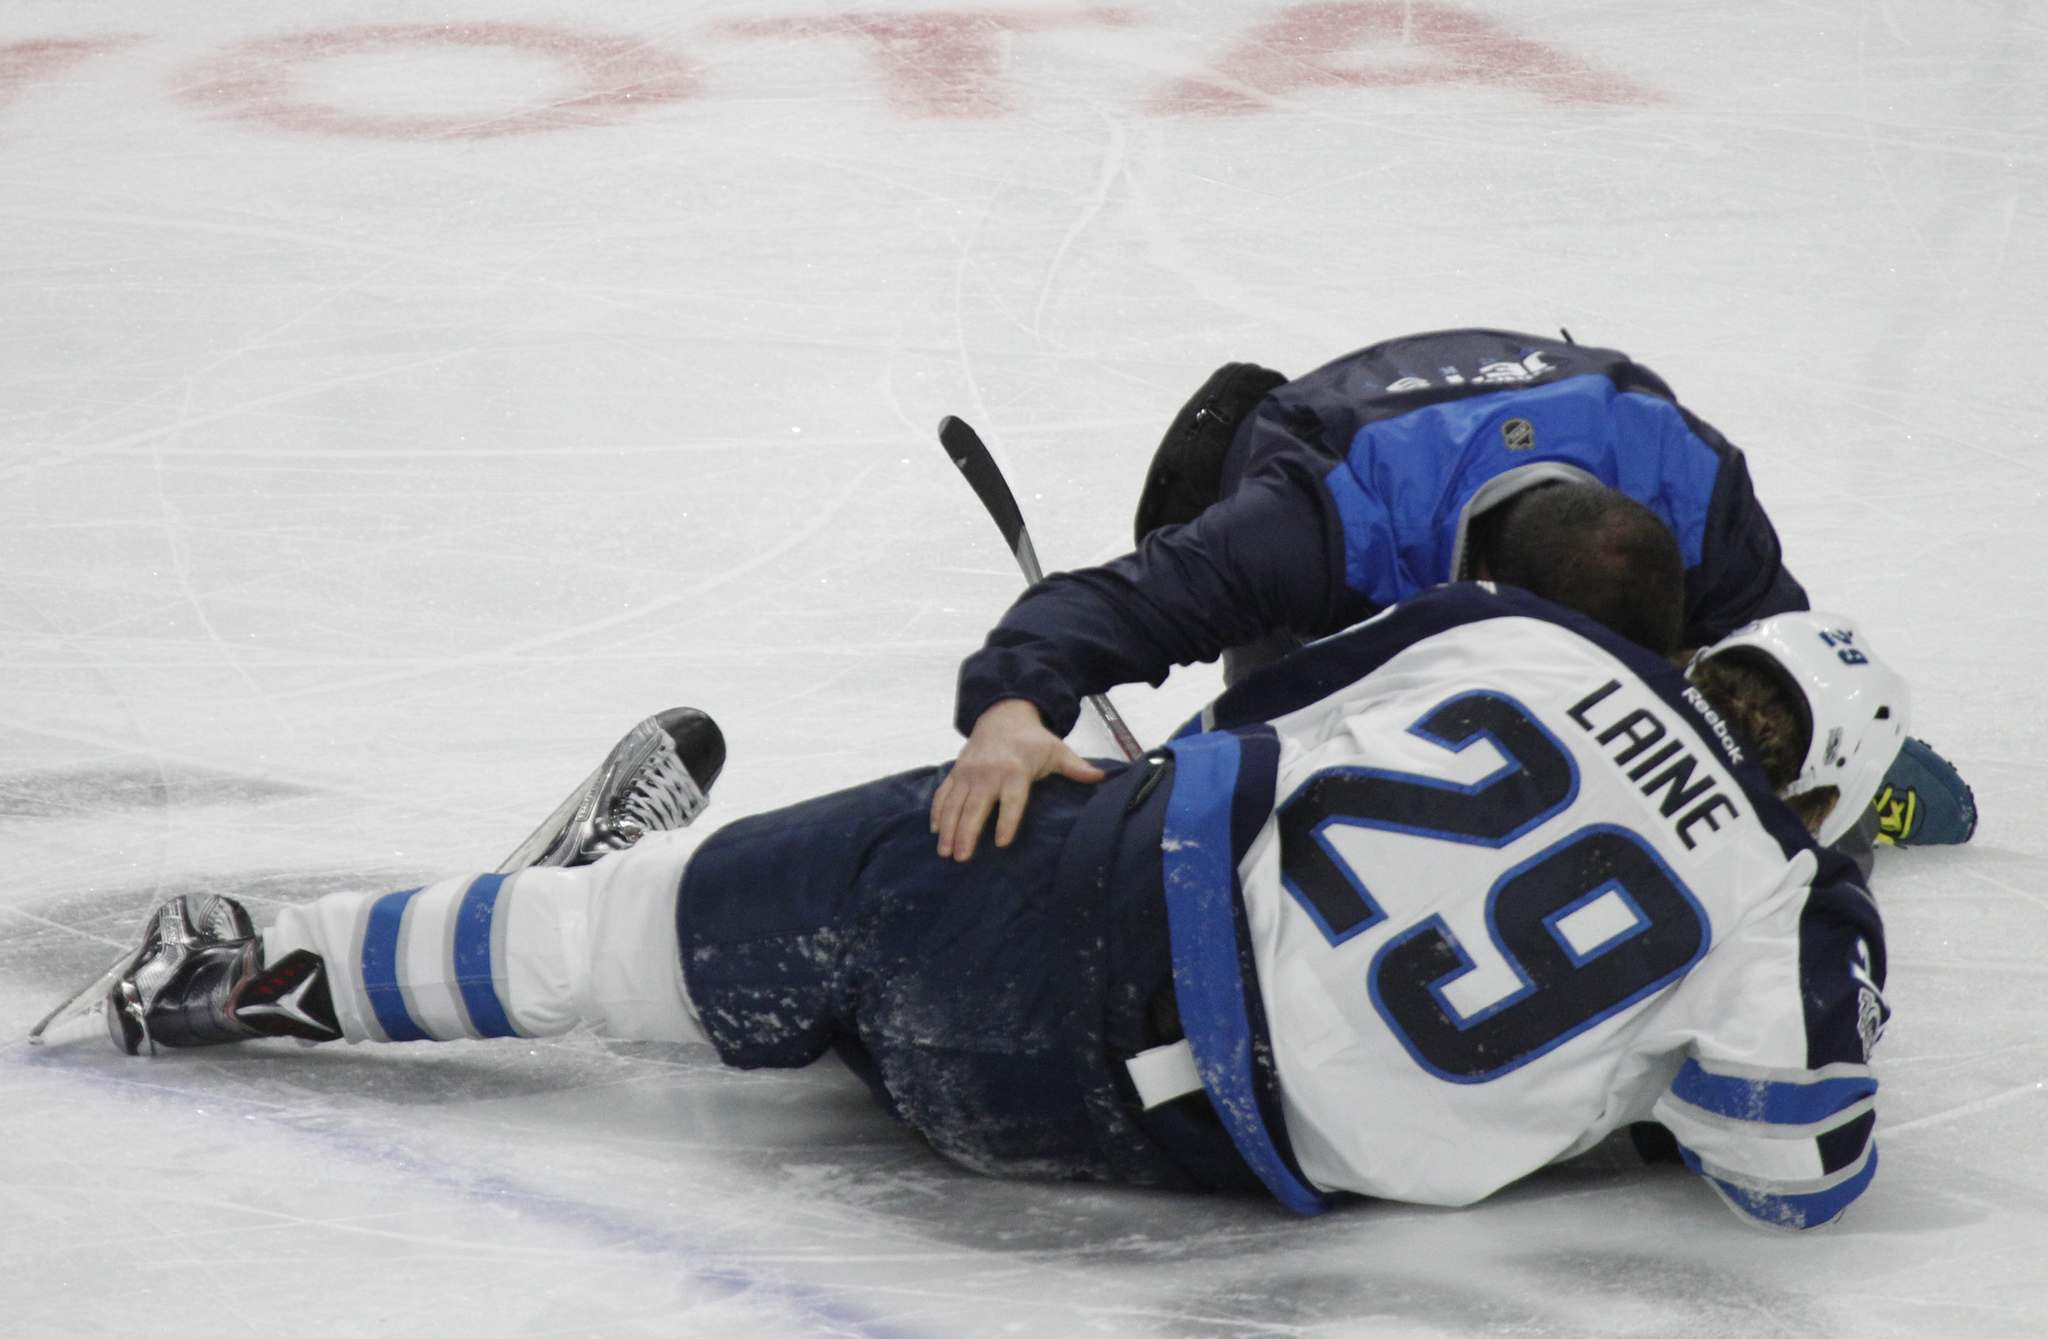 JEFFREY BARNES / THE ASSOCIATED PRESS</p><p>Patrik Laine is helped by a trainer after getting hit during the third period against the Buffalo Sabres.</p>